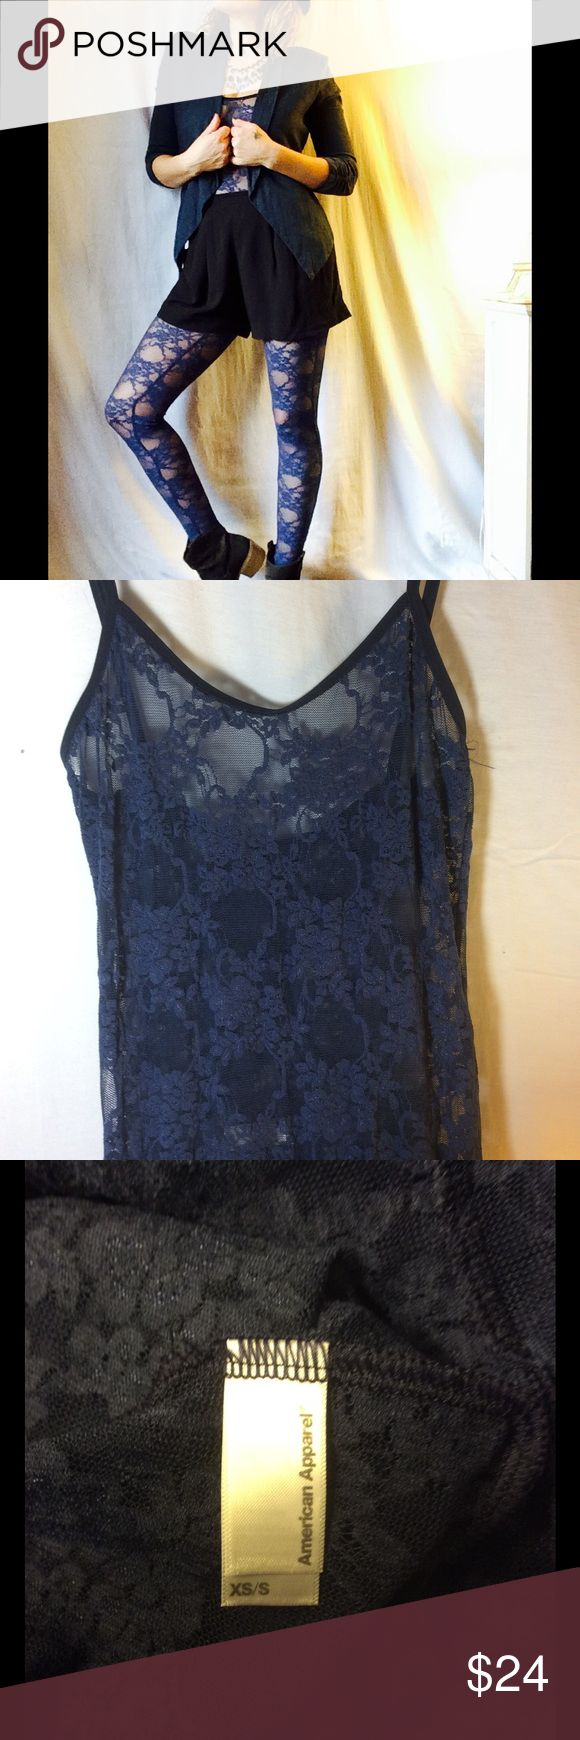 American Apparel Blue Lace Full Length Bodysuit S American Apparel Blue Lace Full Length Bodysuit XS/S Very versatile. Never Worn. NWOT American Apparel Pants Jumpsuits & Rompers